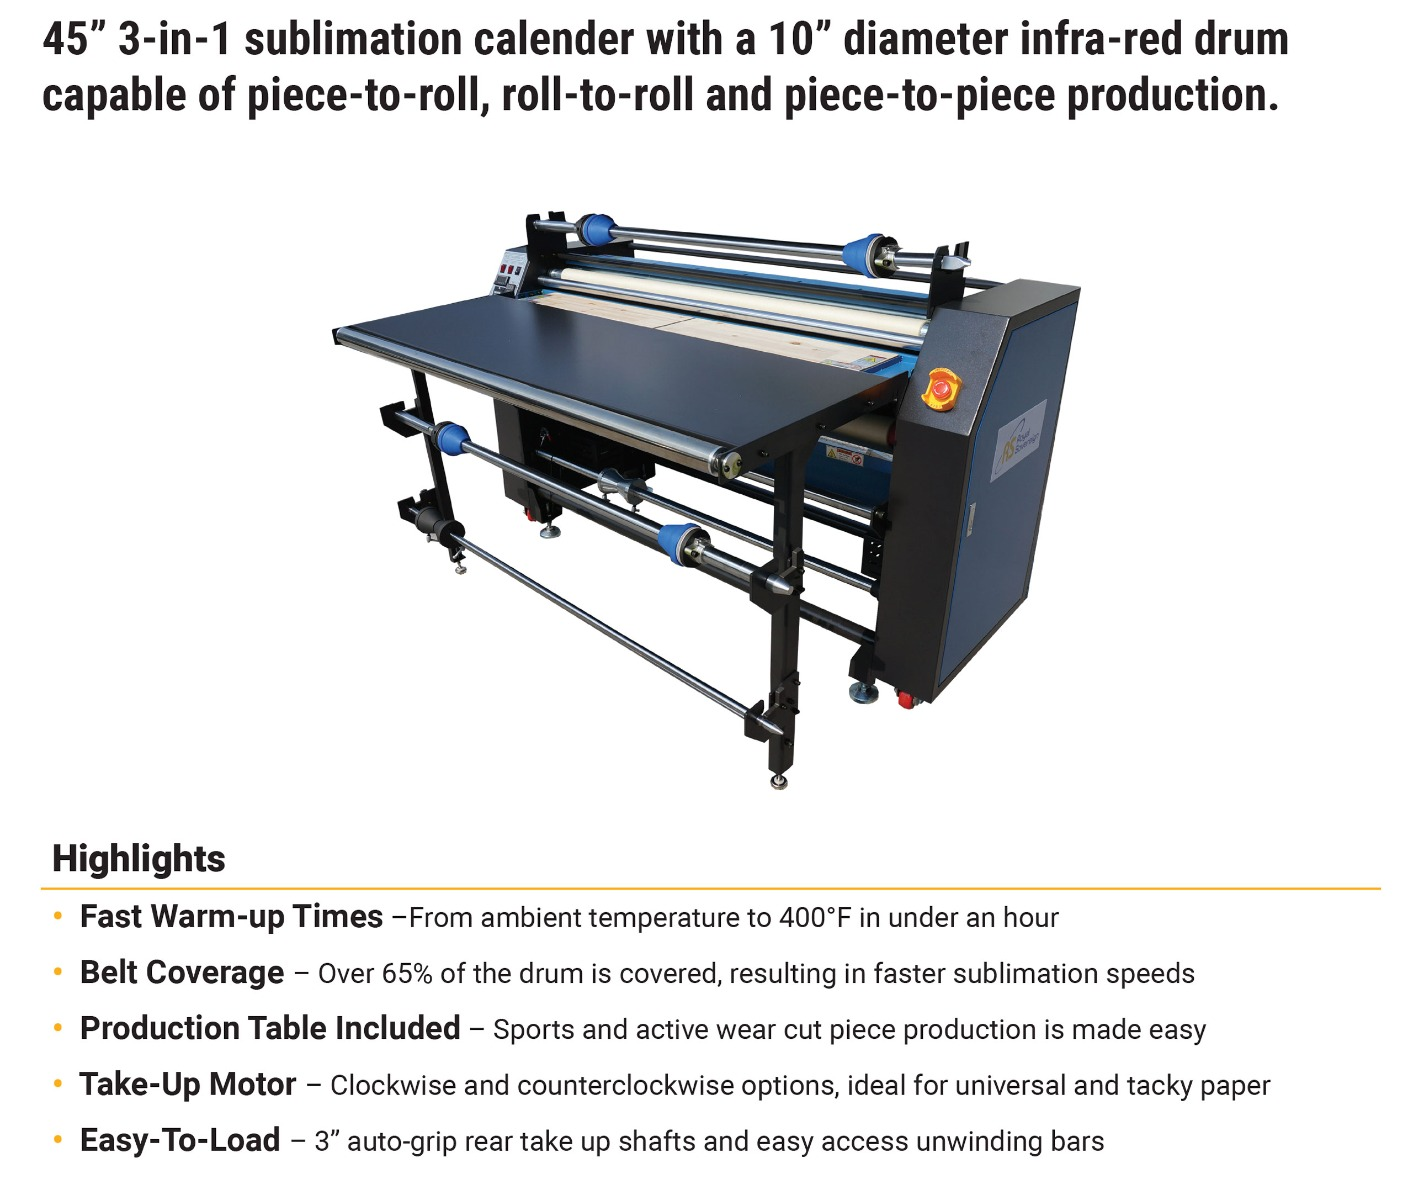 royal sovereign lx-130 calender heat transfer press features including fast warm up times included work production table take up motor easy to load auto grip shafts 10